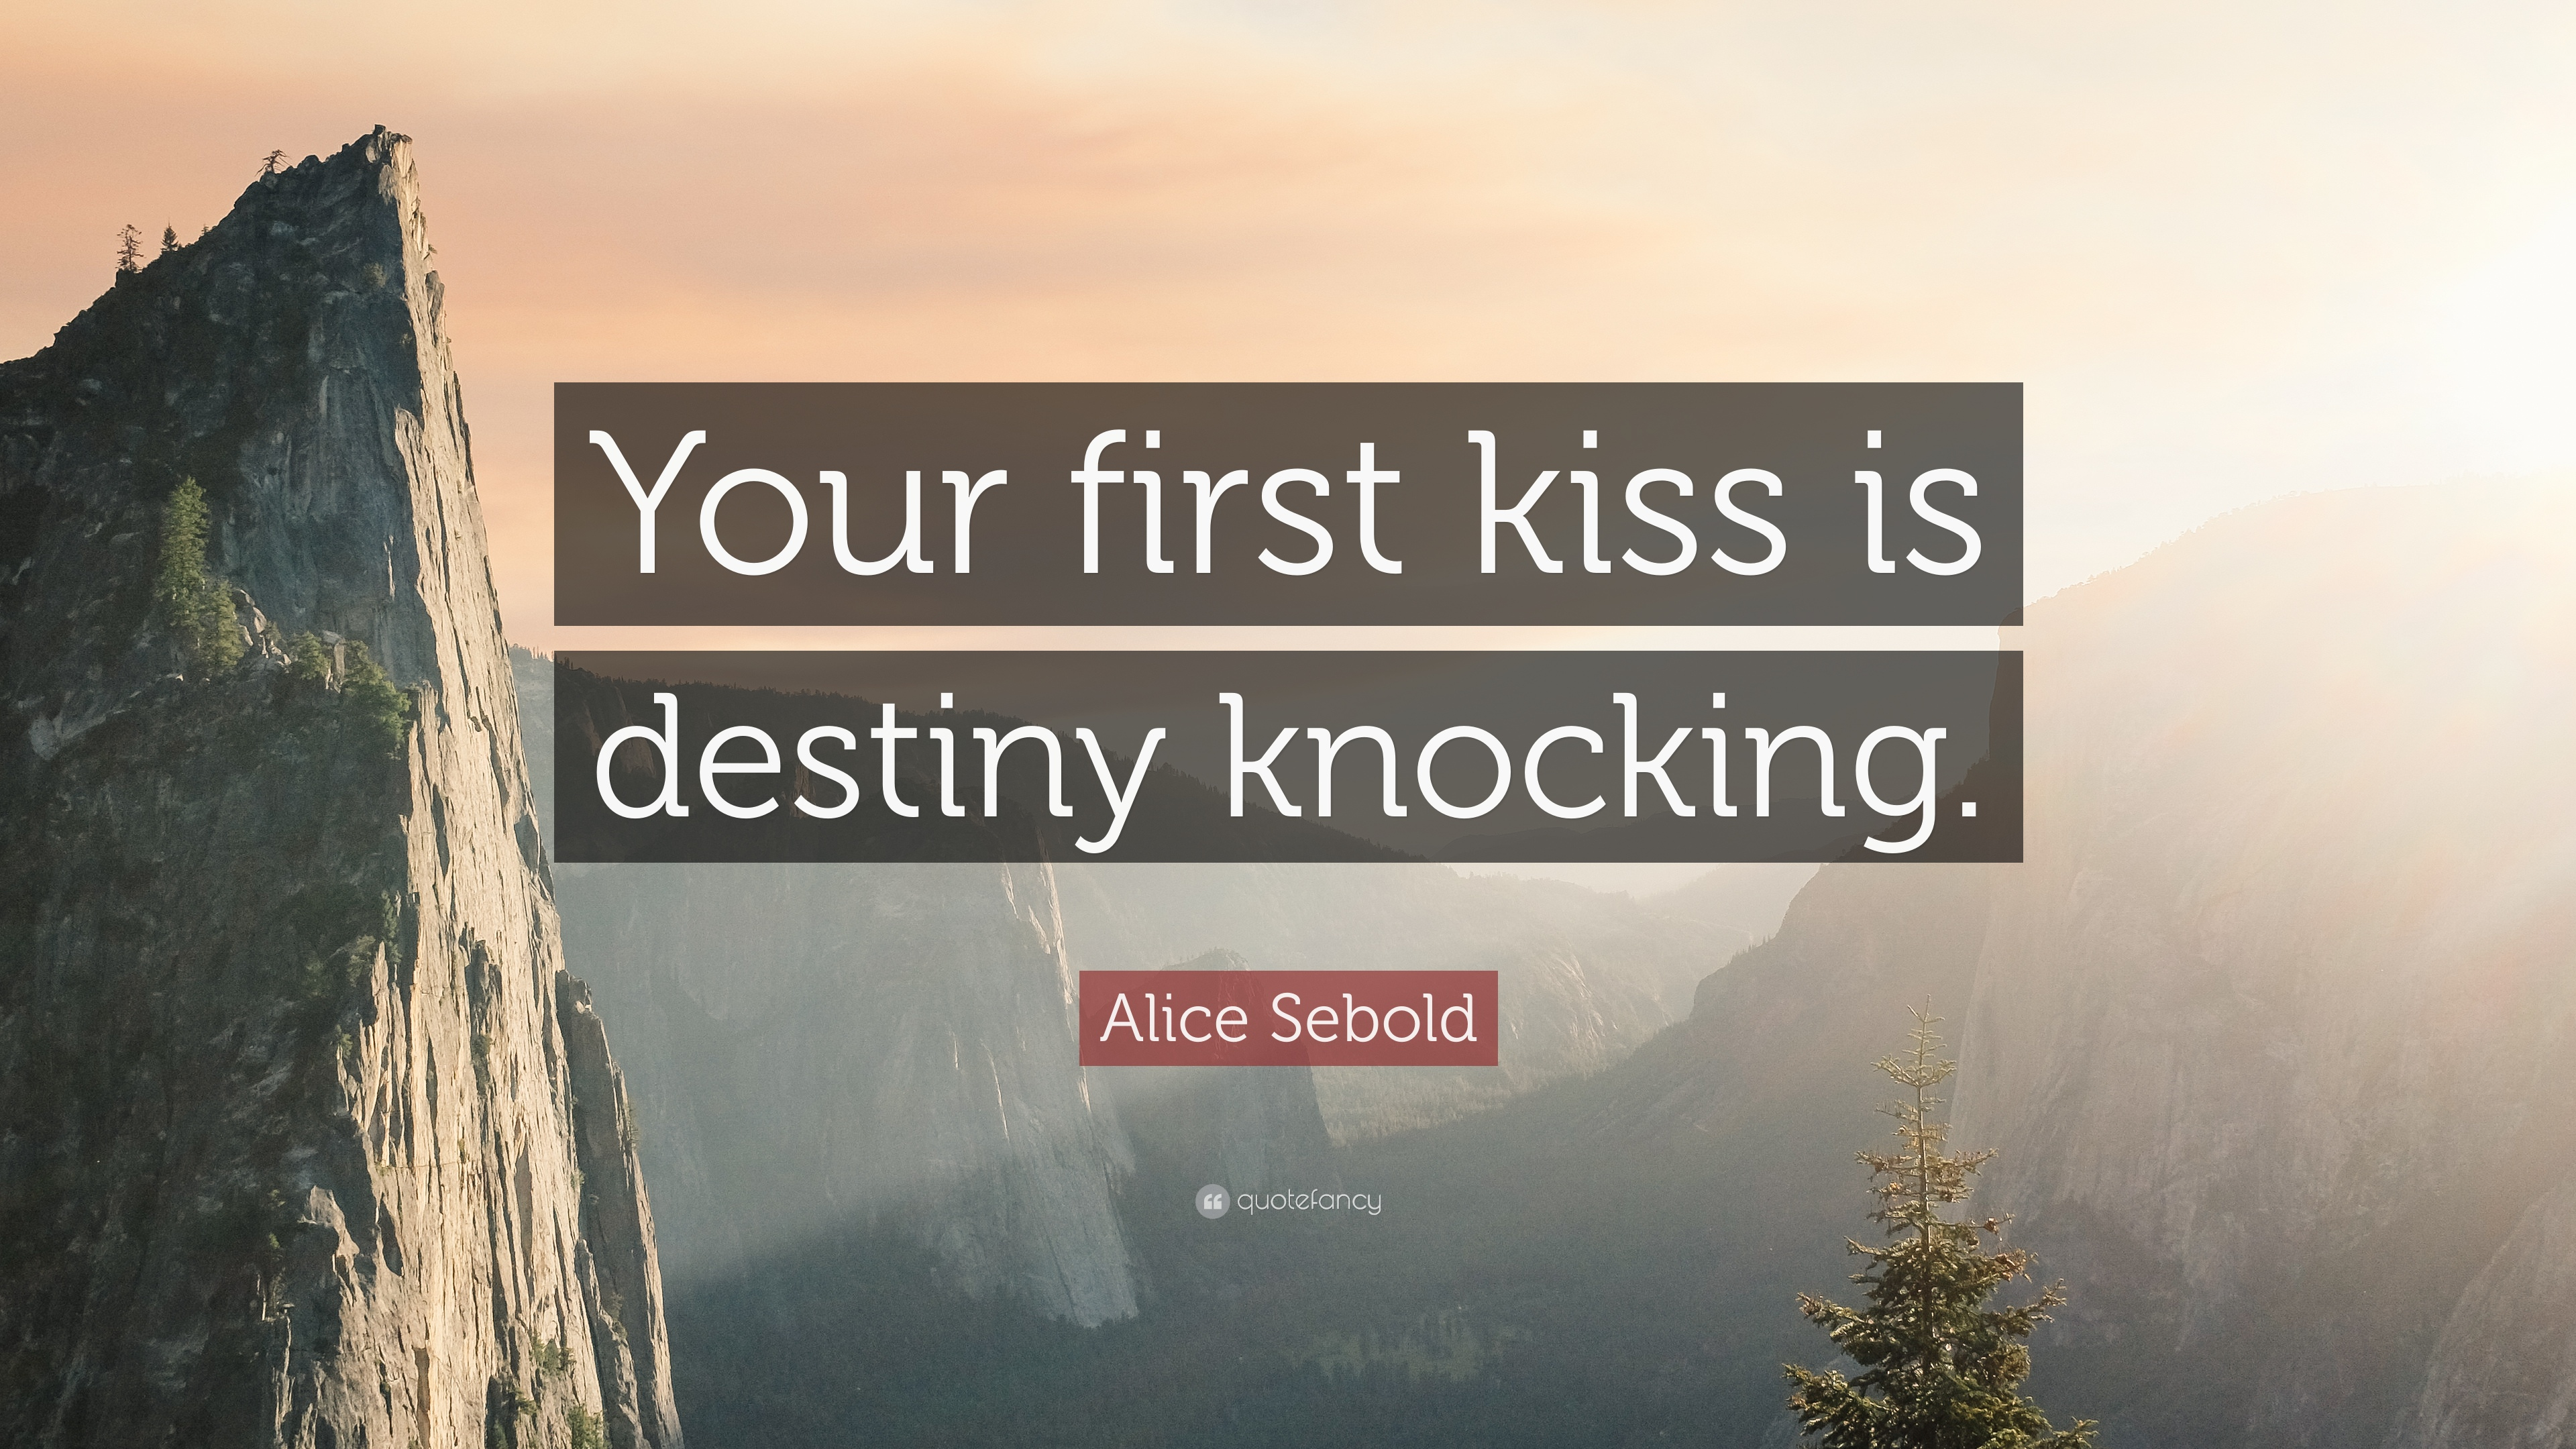 Your first kiss quotes